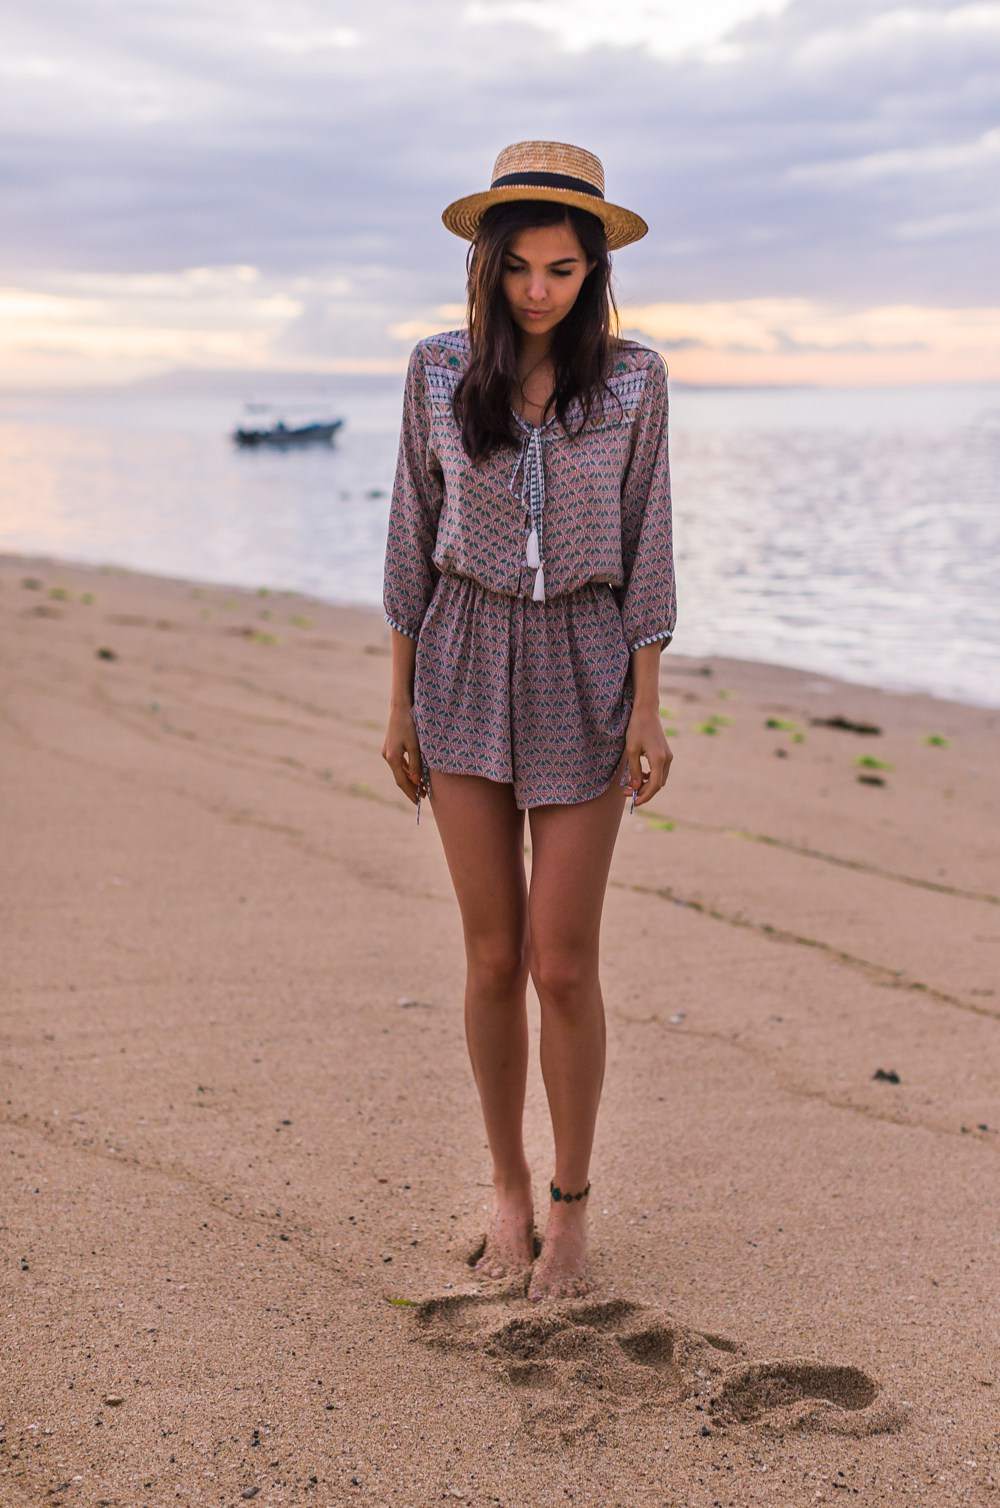 For a cute beach outfit idea, try wearing a loose and light patterned playsuit with a retro style straw hat like Doina Ciobanu. Not only is this look effortlessly summery, it is also a great way to cover up for an evening at the beach after swimming! Outfit: Faithfull The Brand.